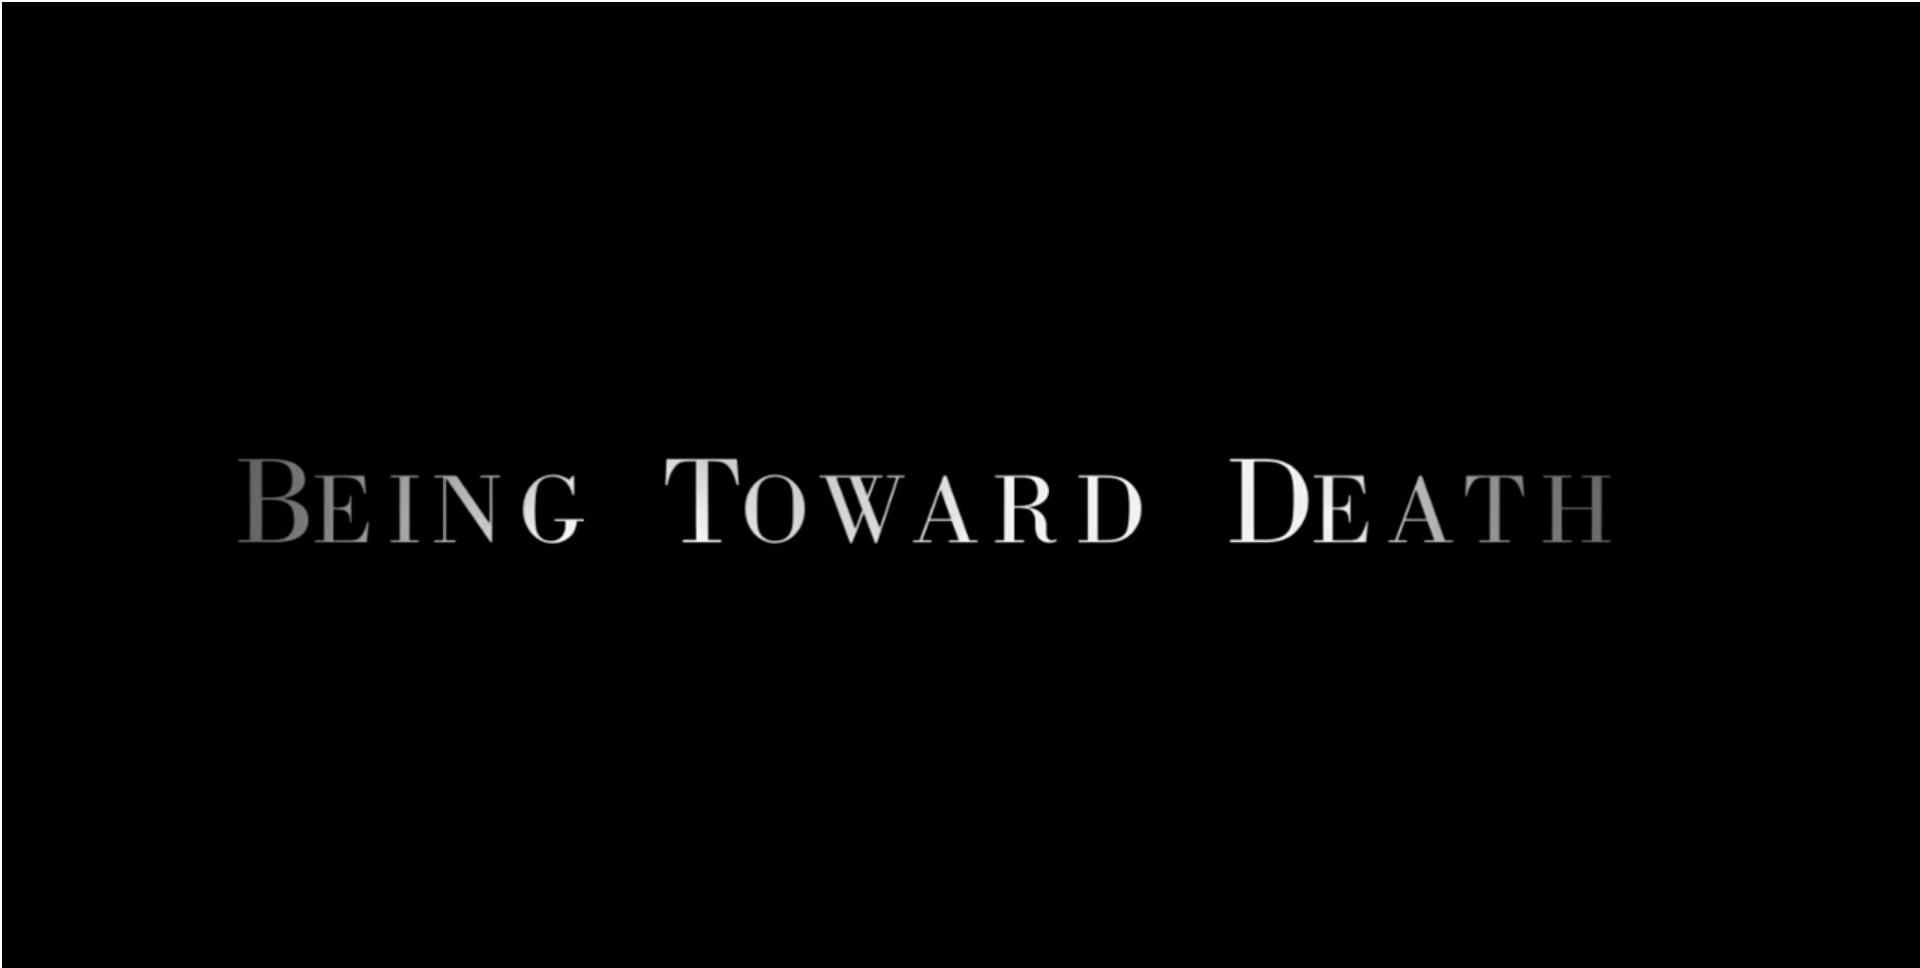 """Being Toward Death"" - Film"